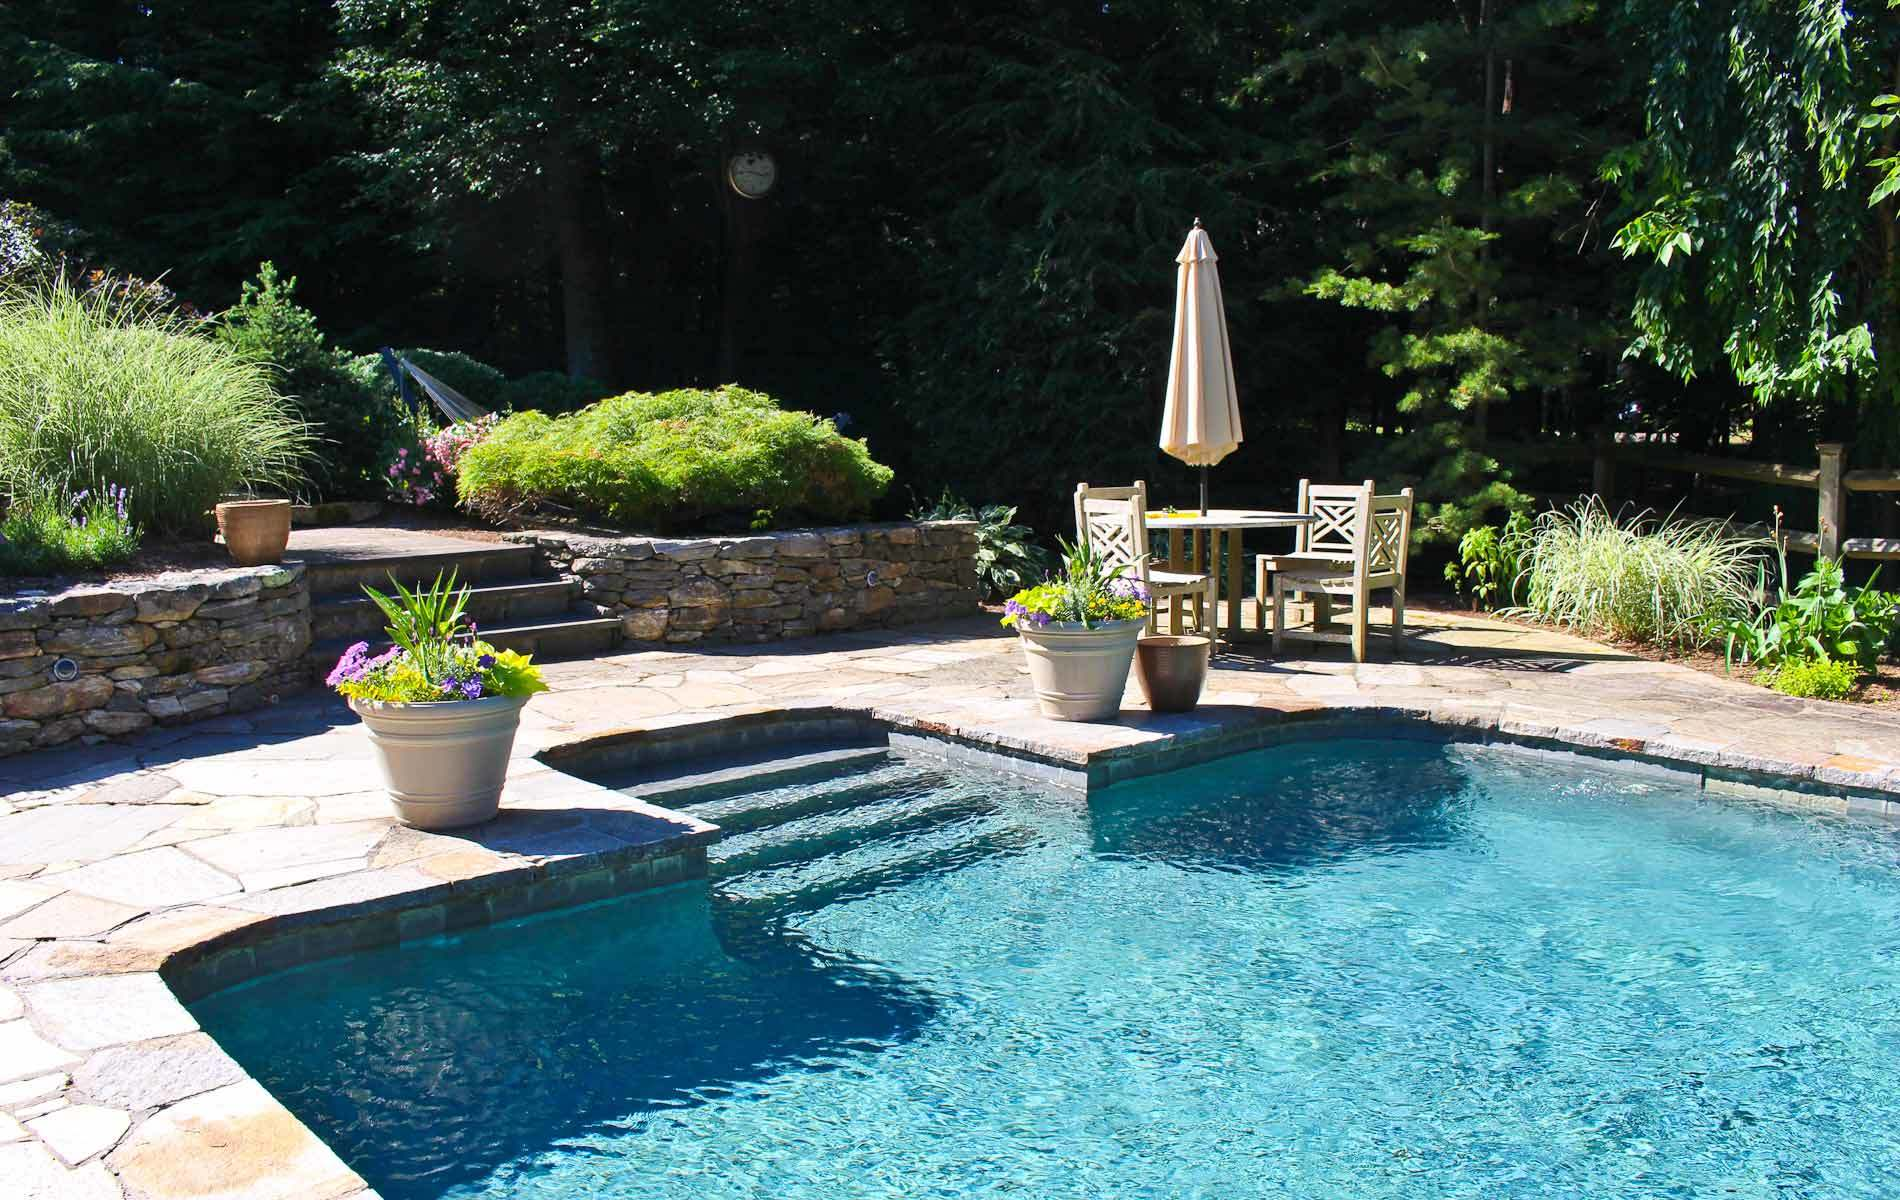 Homes with swimming pool for sale in newtown ct find and buy houses with pool dagny 39 s real estate House for sale with swimming pool